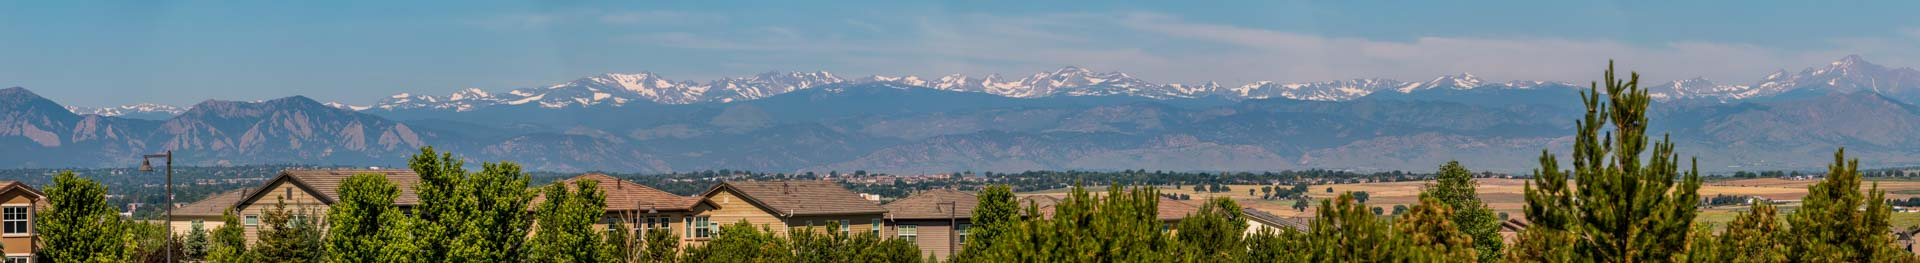 0478 Broomfield Anthem Highlands Front Range Panorama E 1920 - Package Pricing